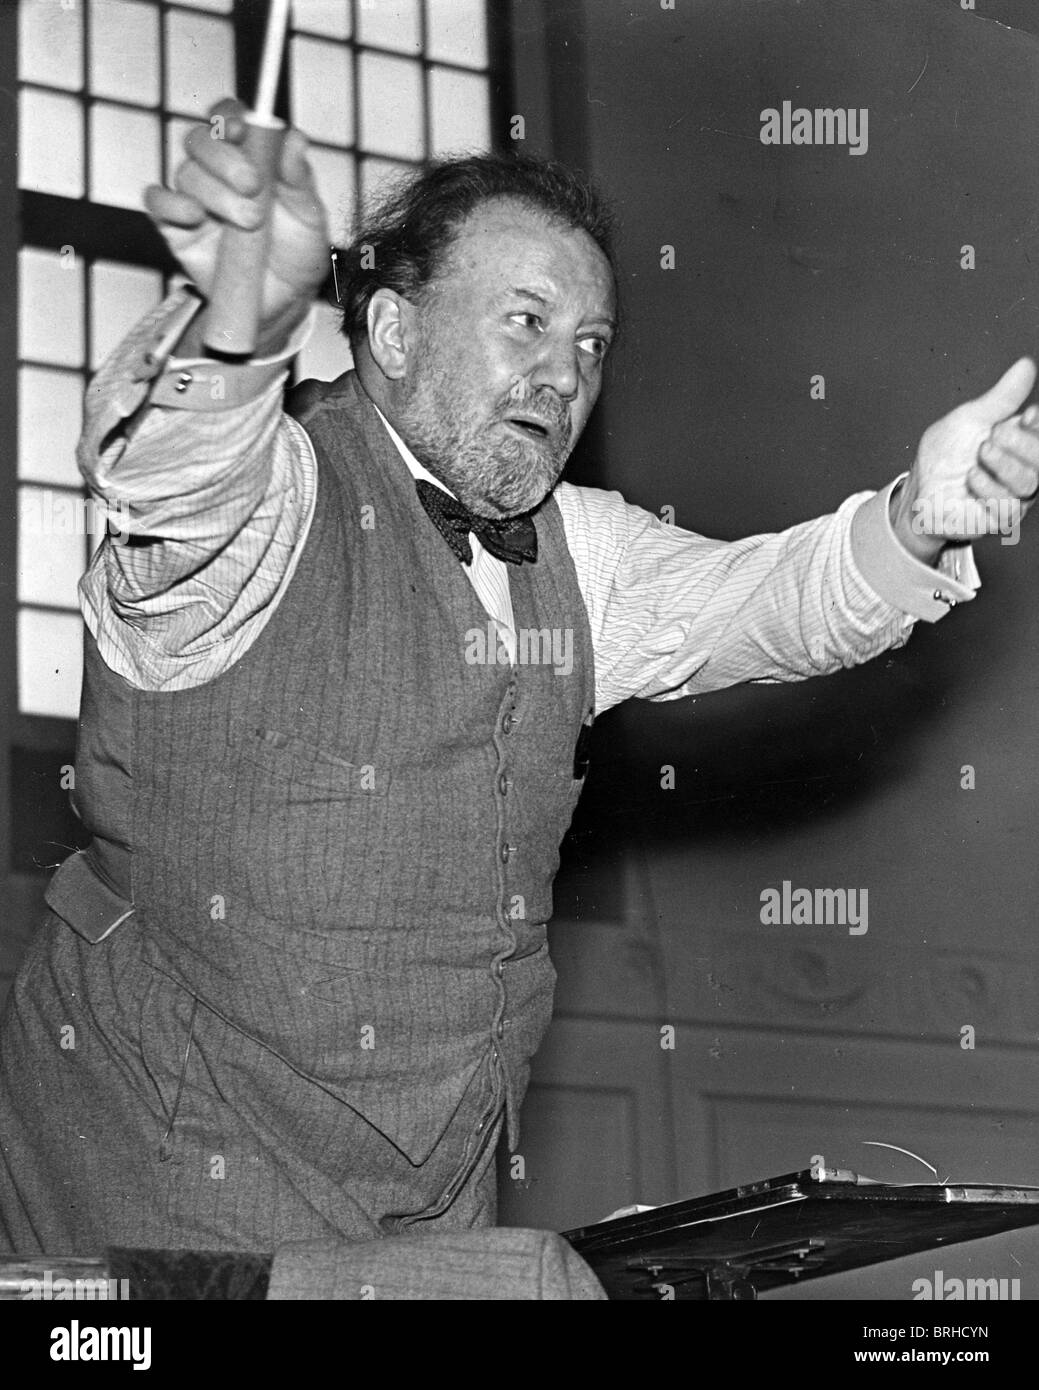 SIR HENRY JOSEPH WOOD (1869-1944) English conductor in 1940 - Stock Image